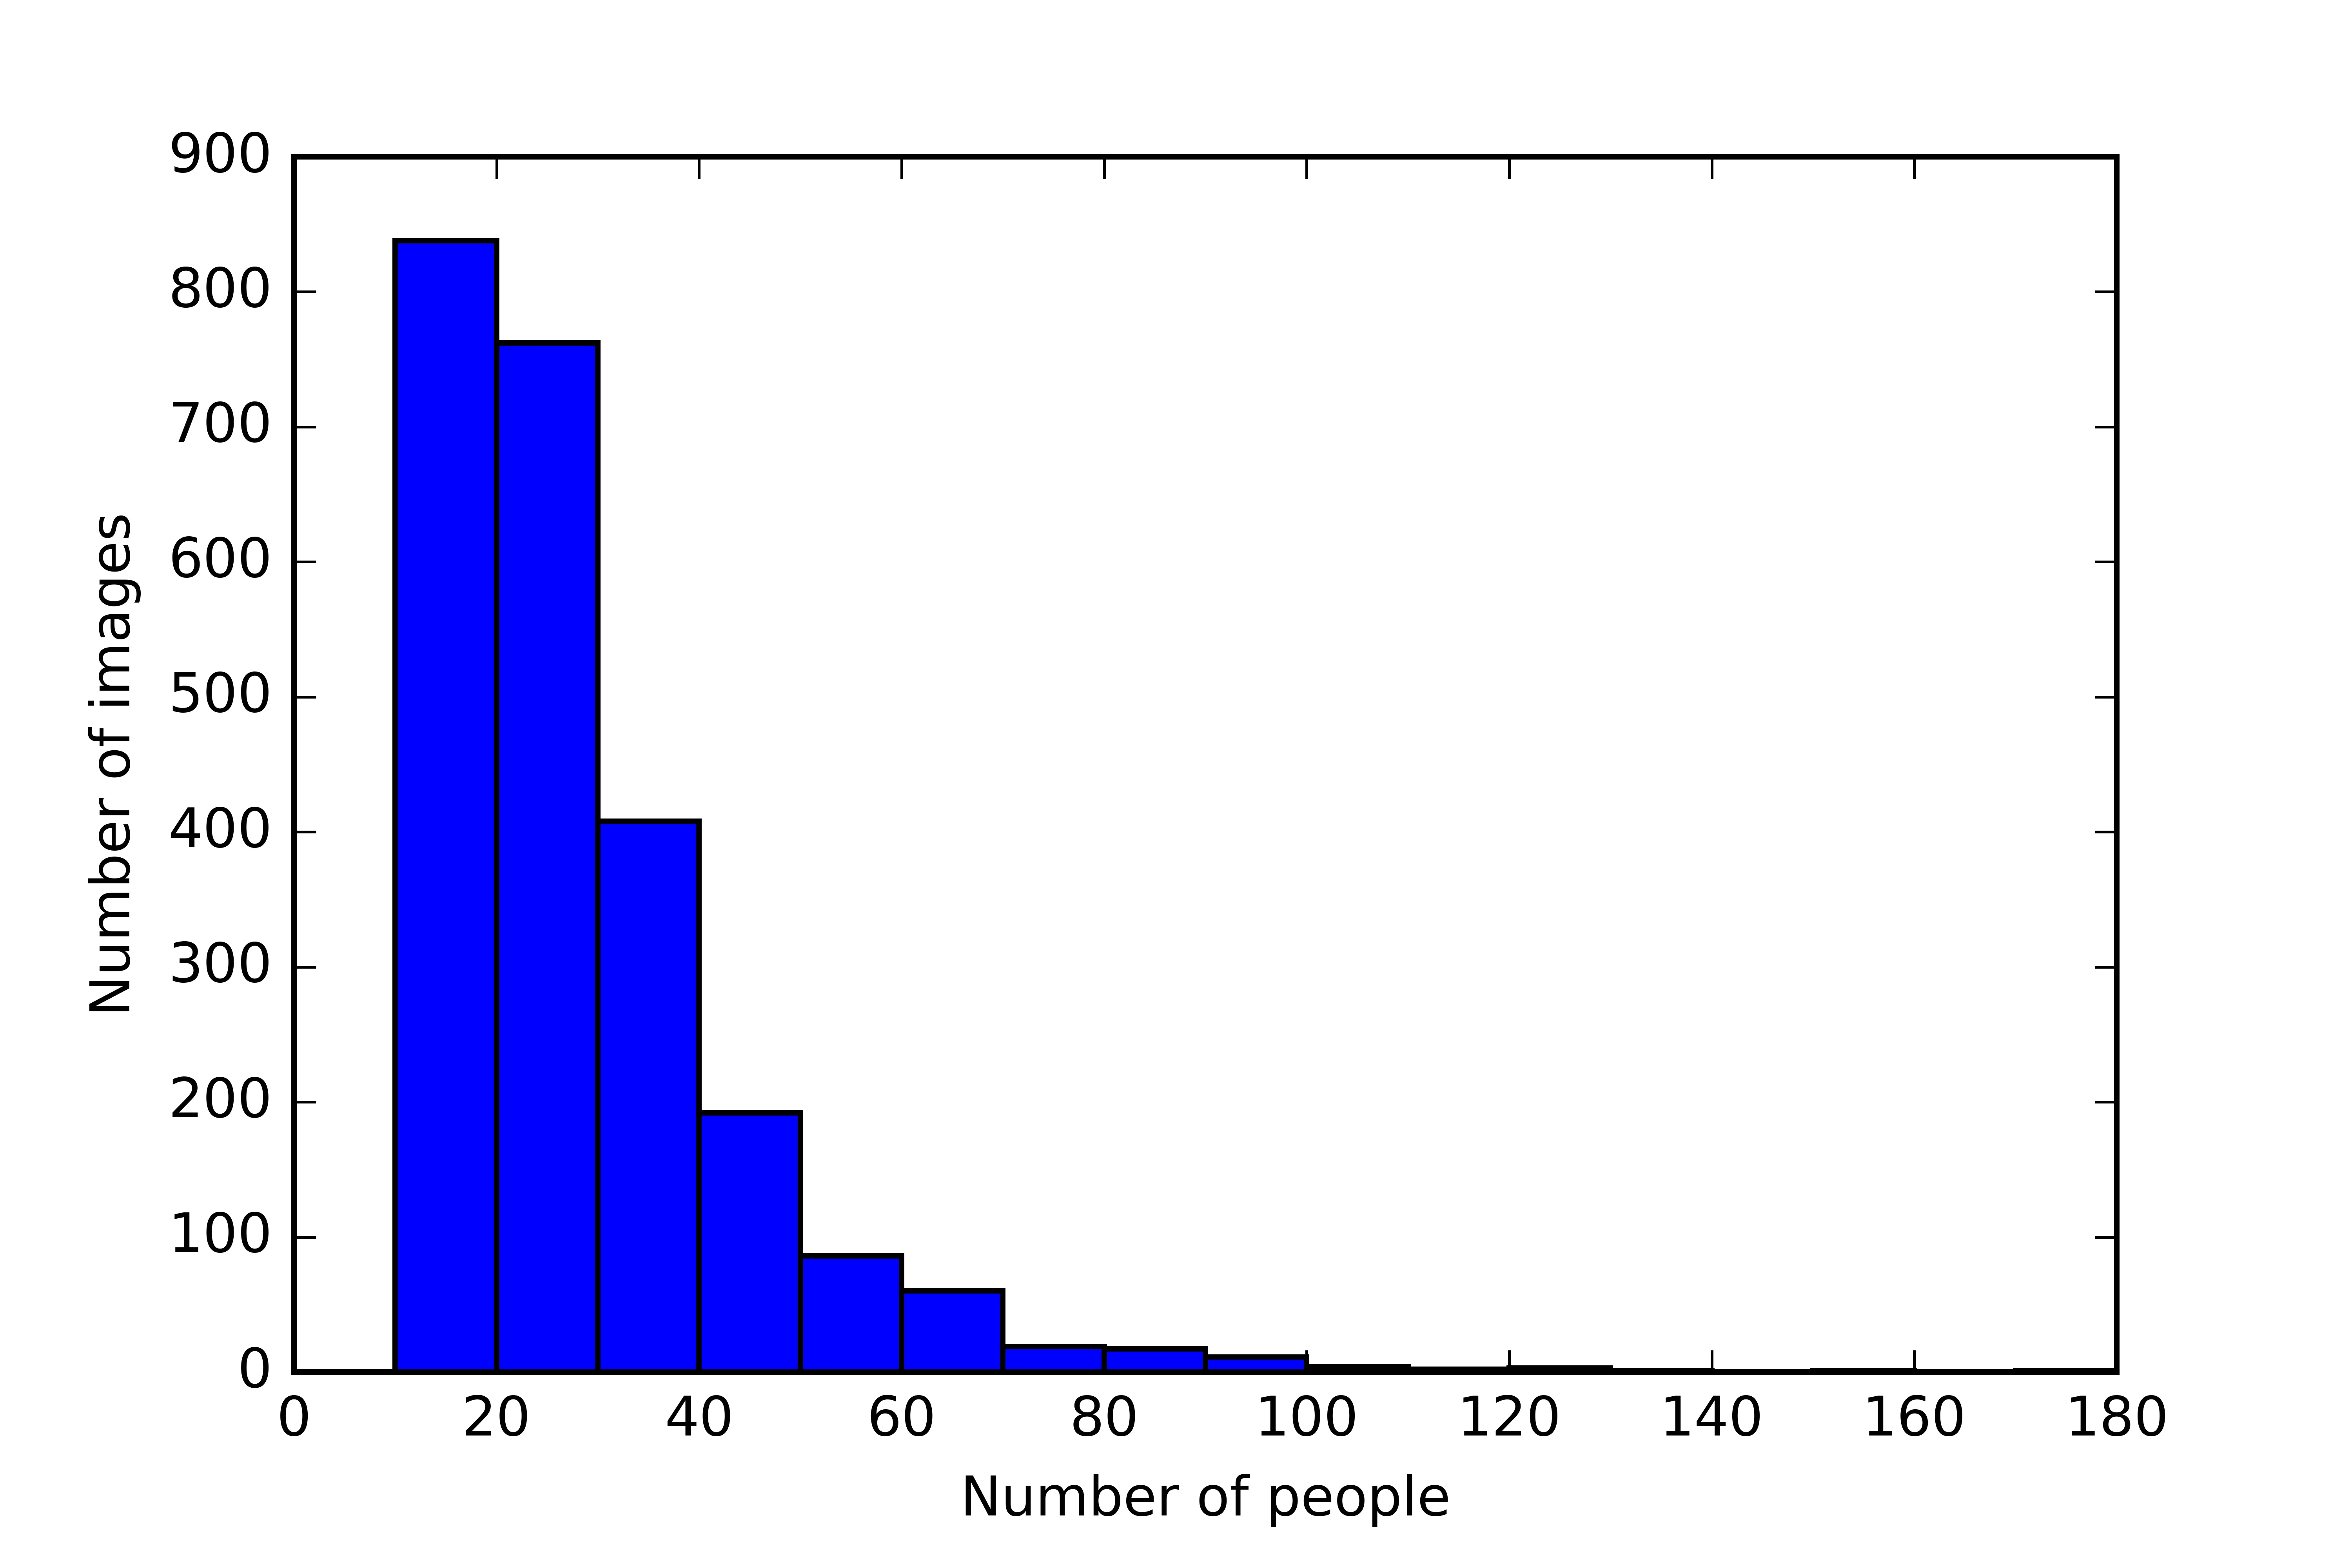 histogram_of_people_counts_PartB-1